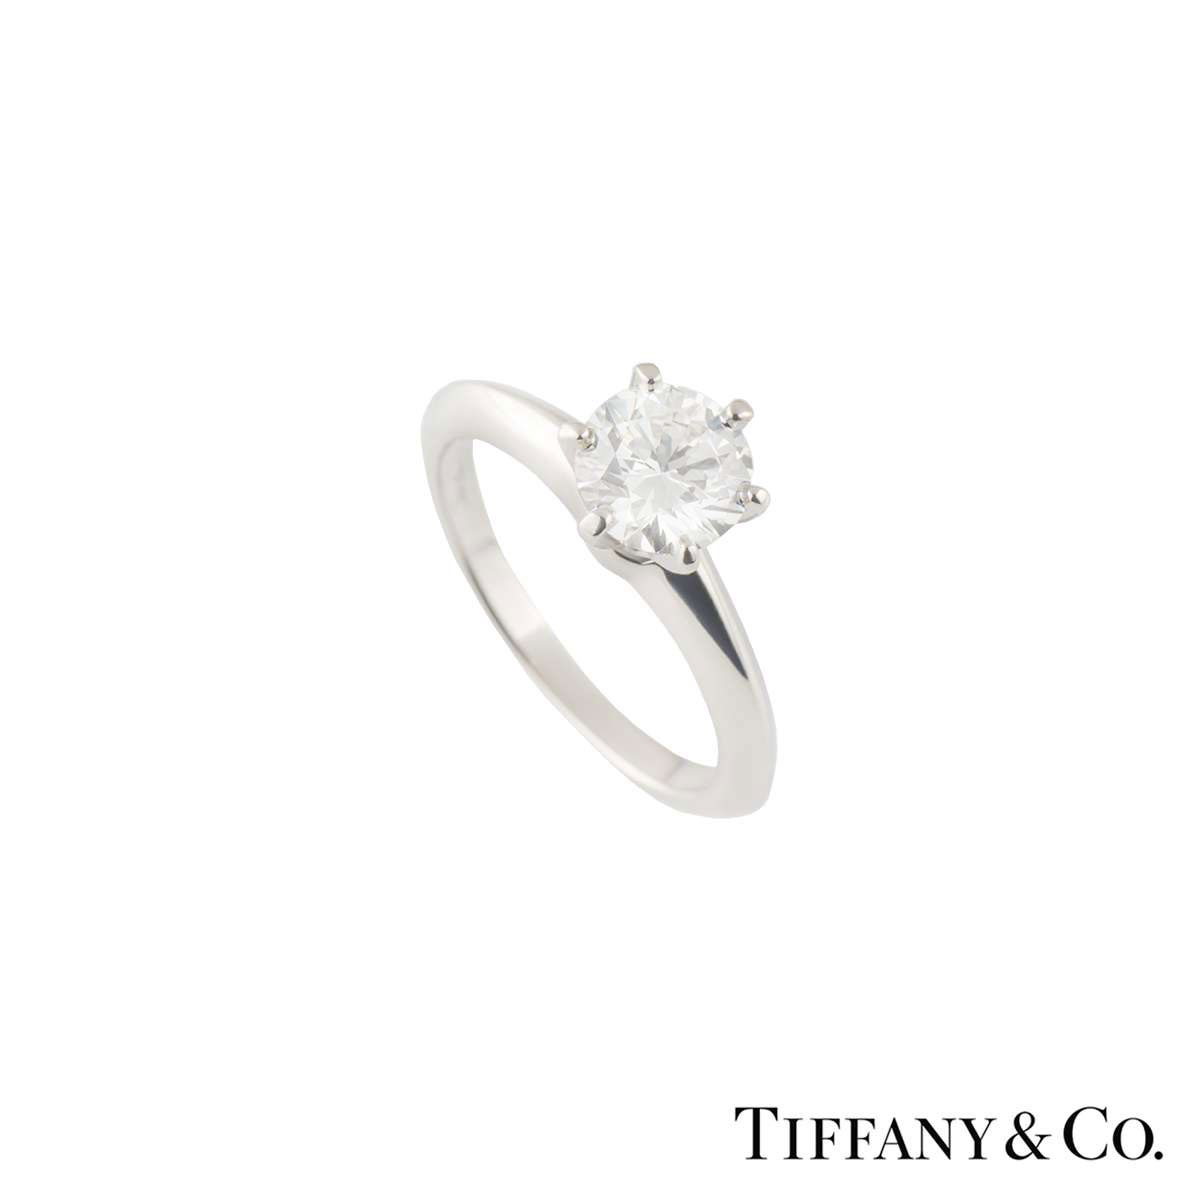 Tiffany & Co. Platinum Diamond Setting Ring 1.03ct G/VS2 XXX